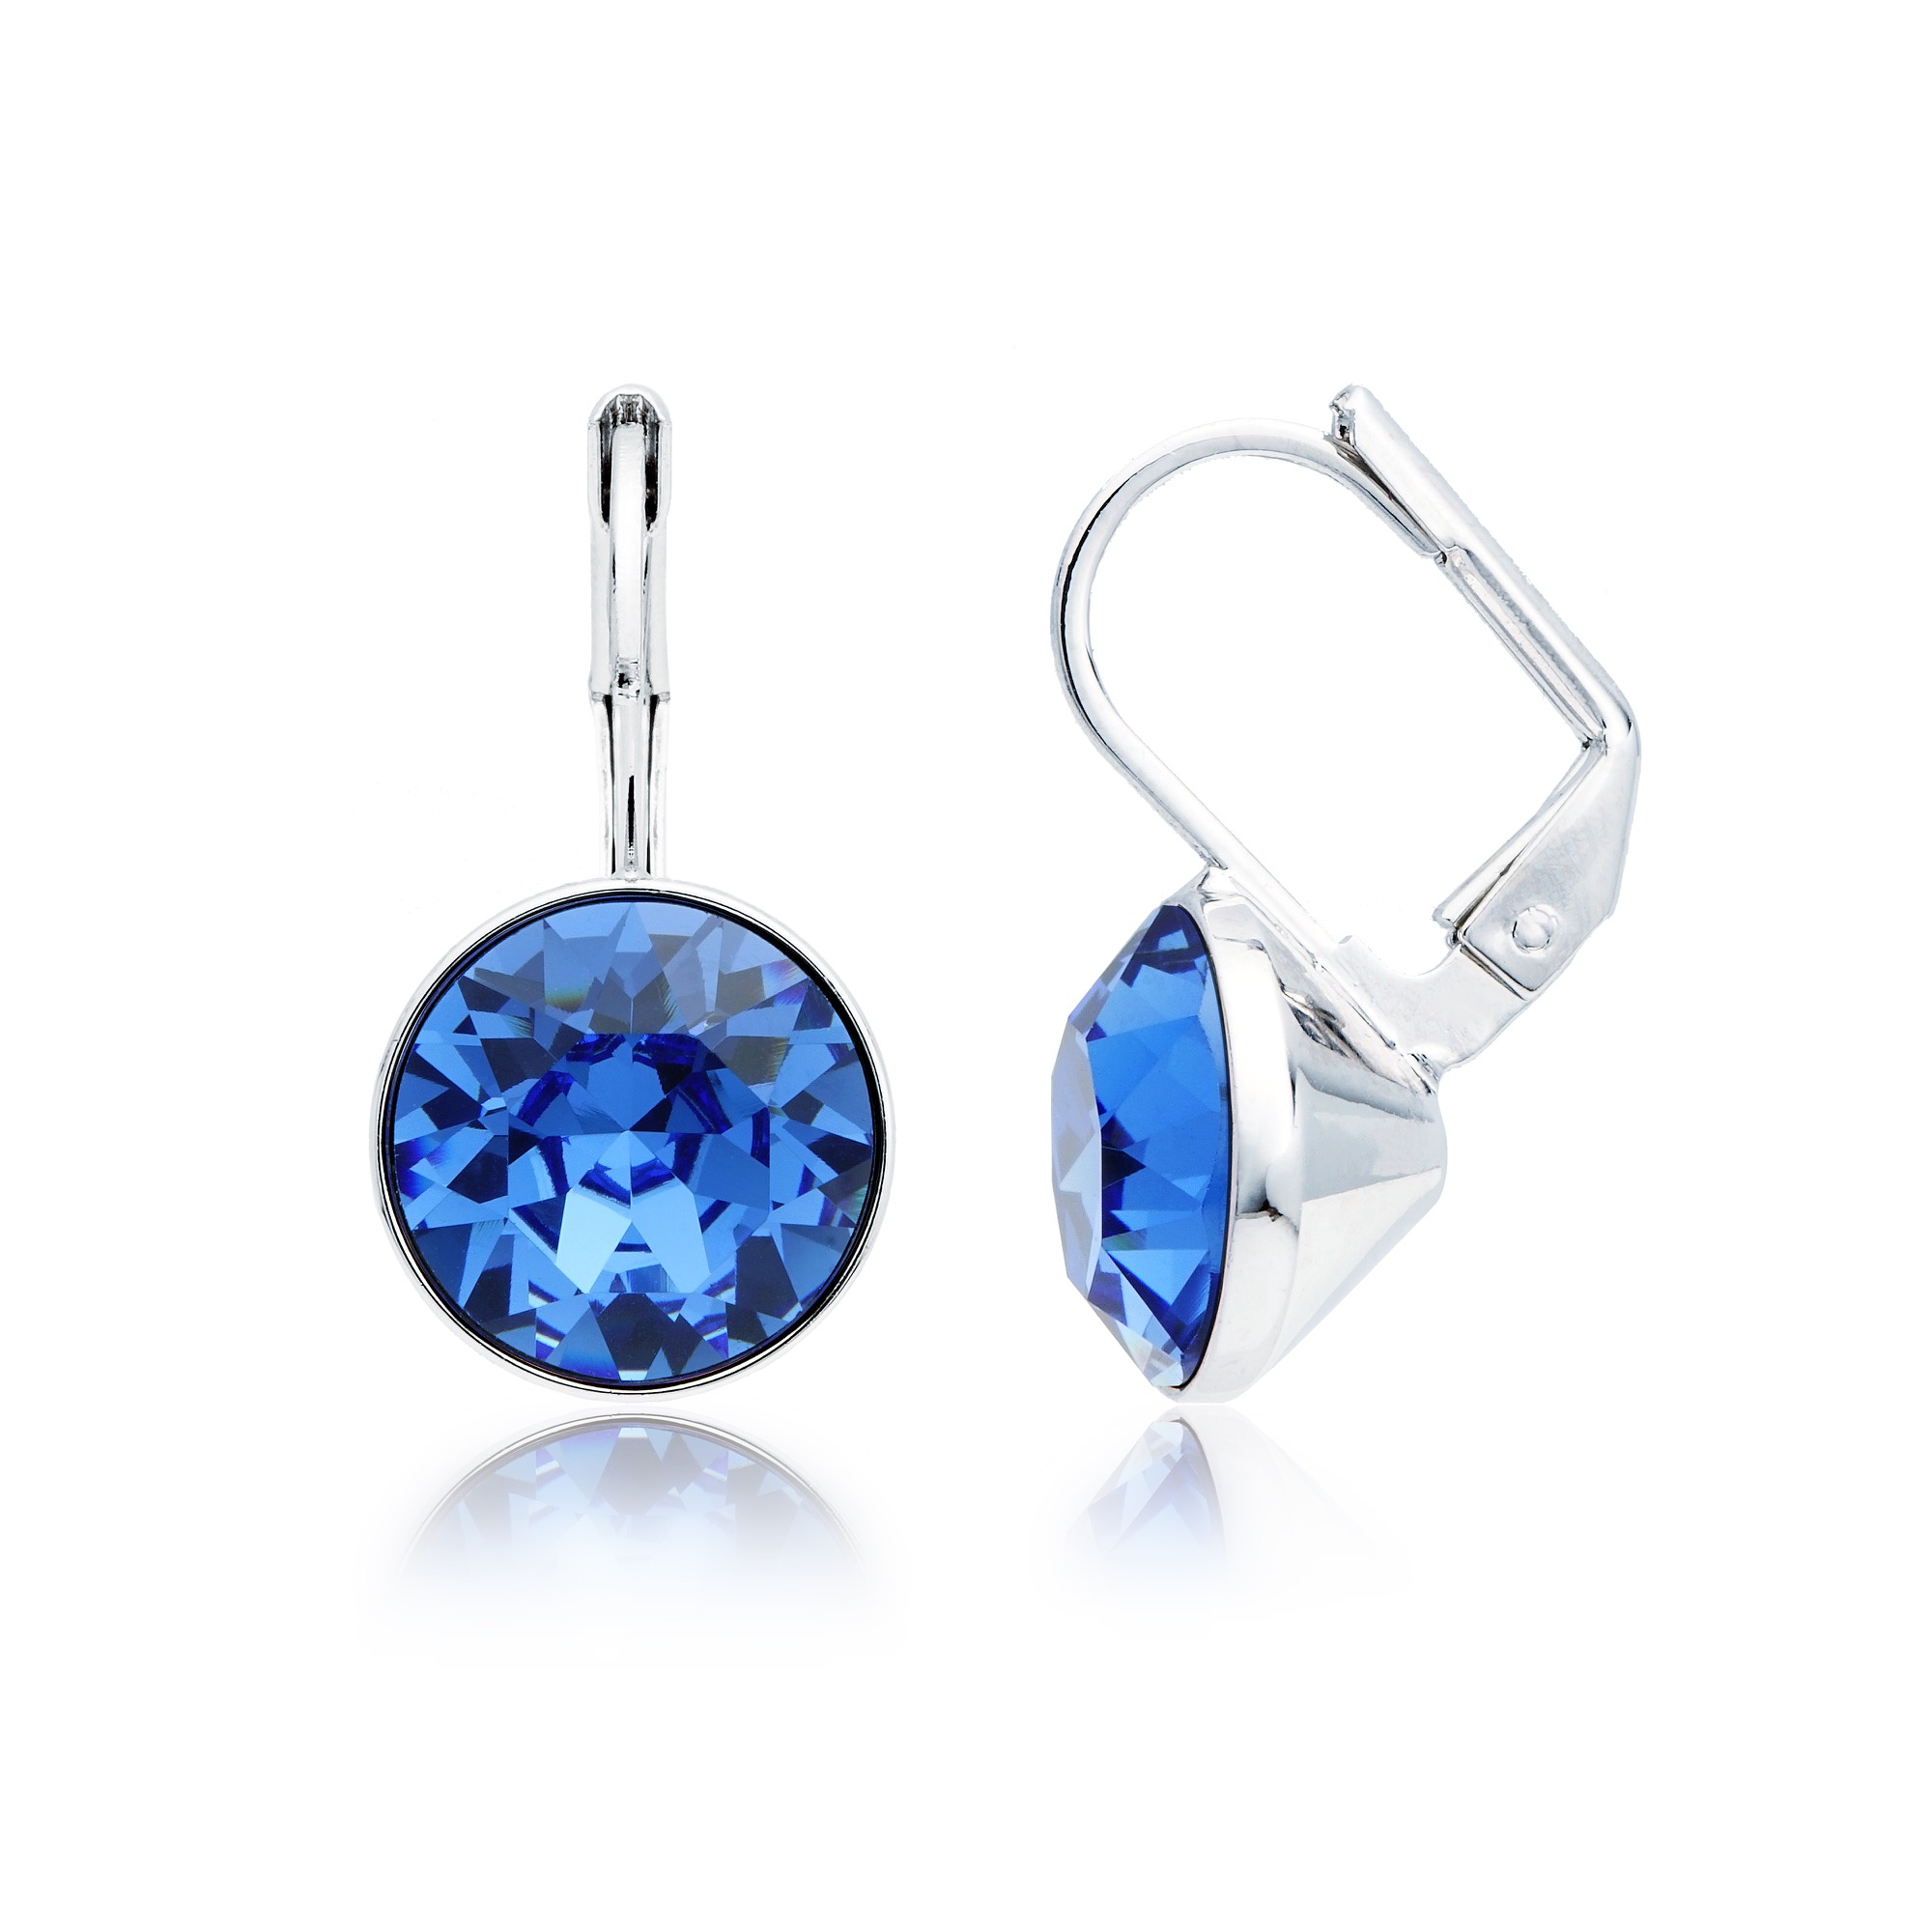 Bella Earrings With 4 Carat Shire Crystals Rhodium Plated